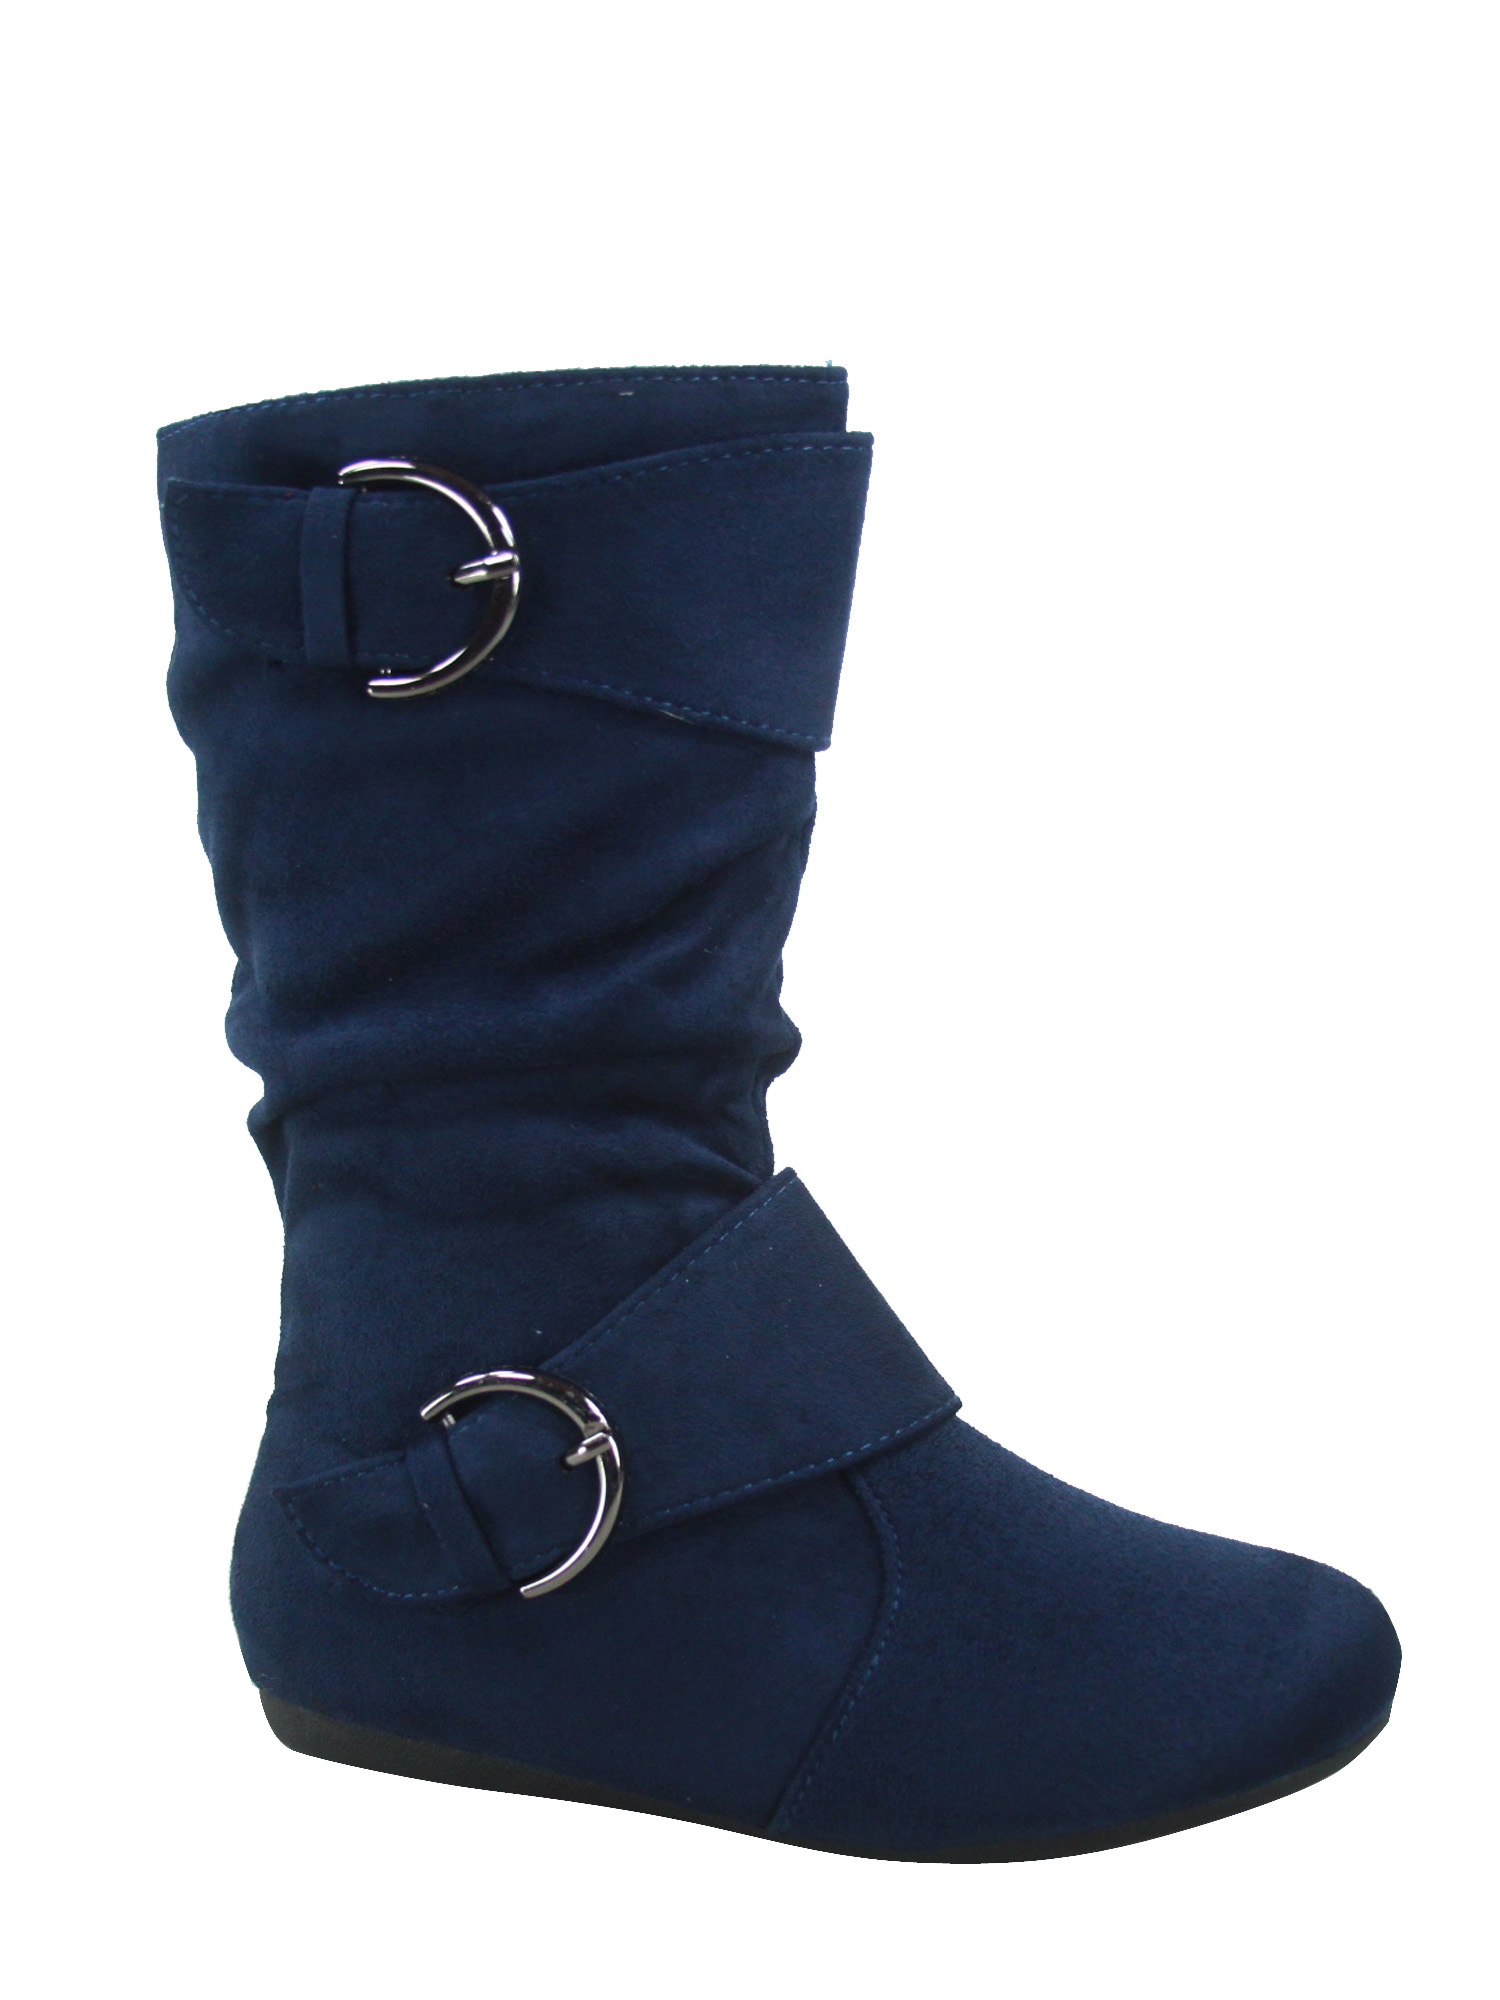 FASHION BUCKLES /& ZIPPER BRAND NEW GIRL/'S CAUSAL WINTER SLOUCH FLAT BOOTS